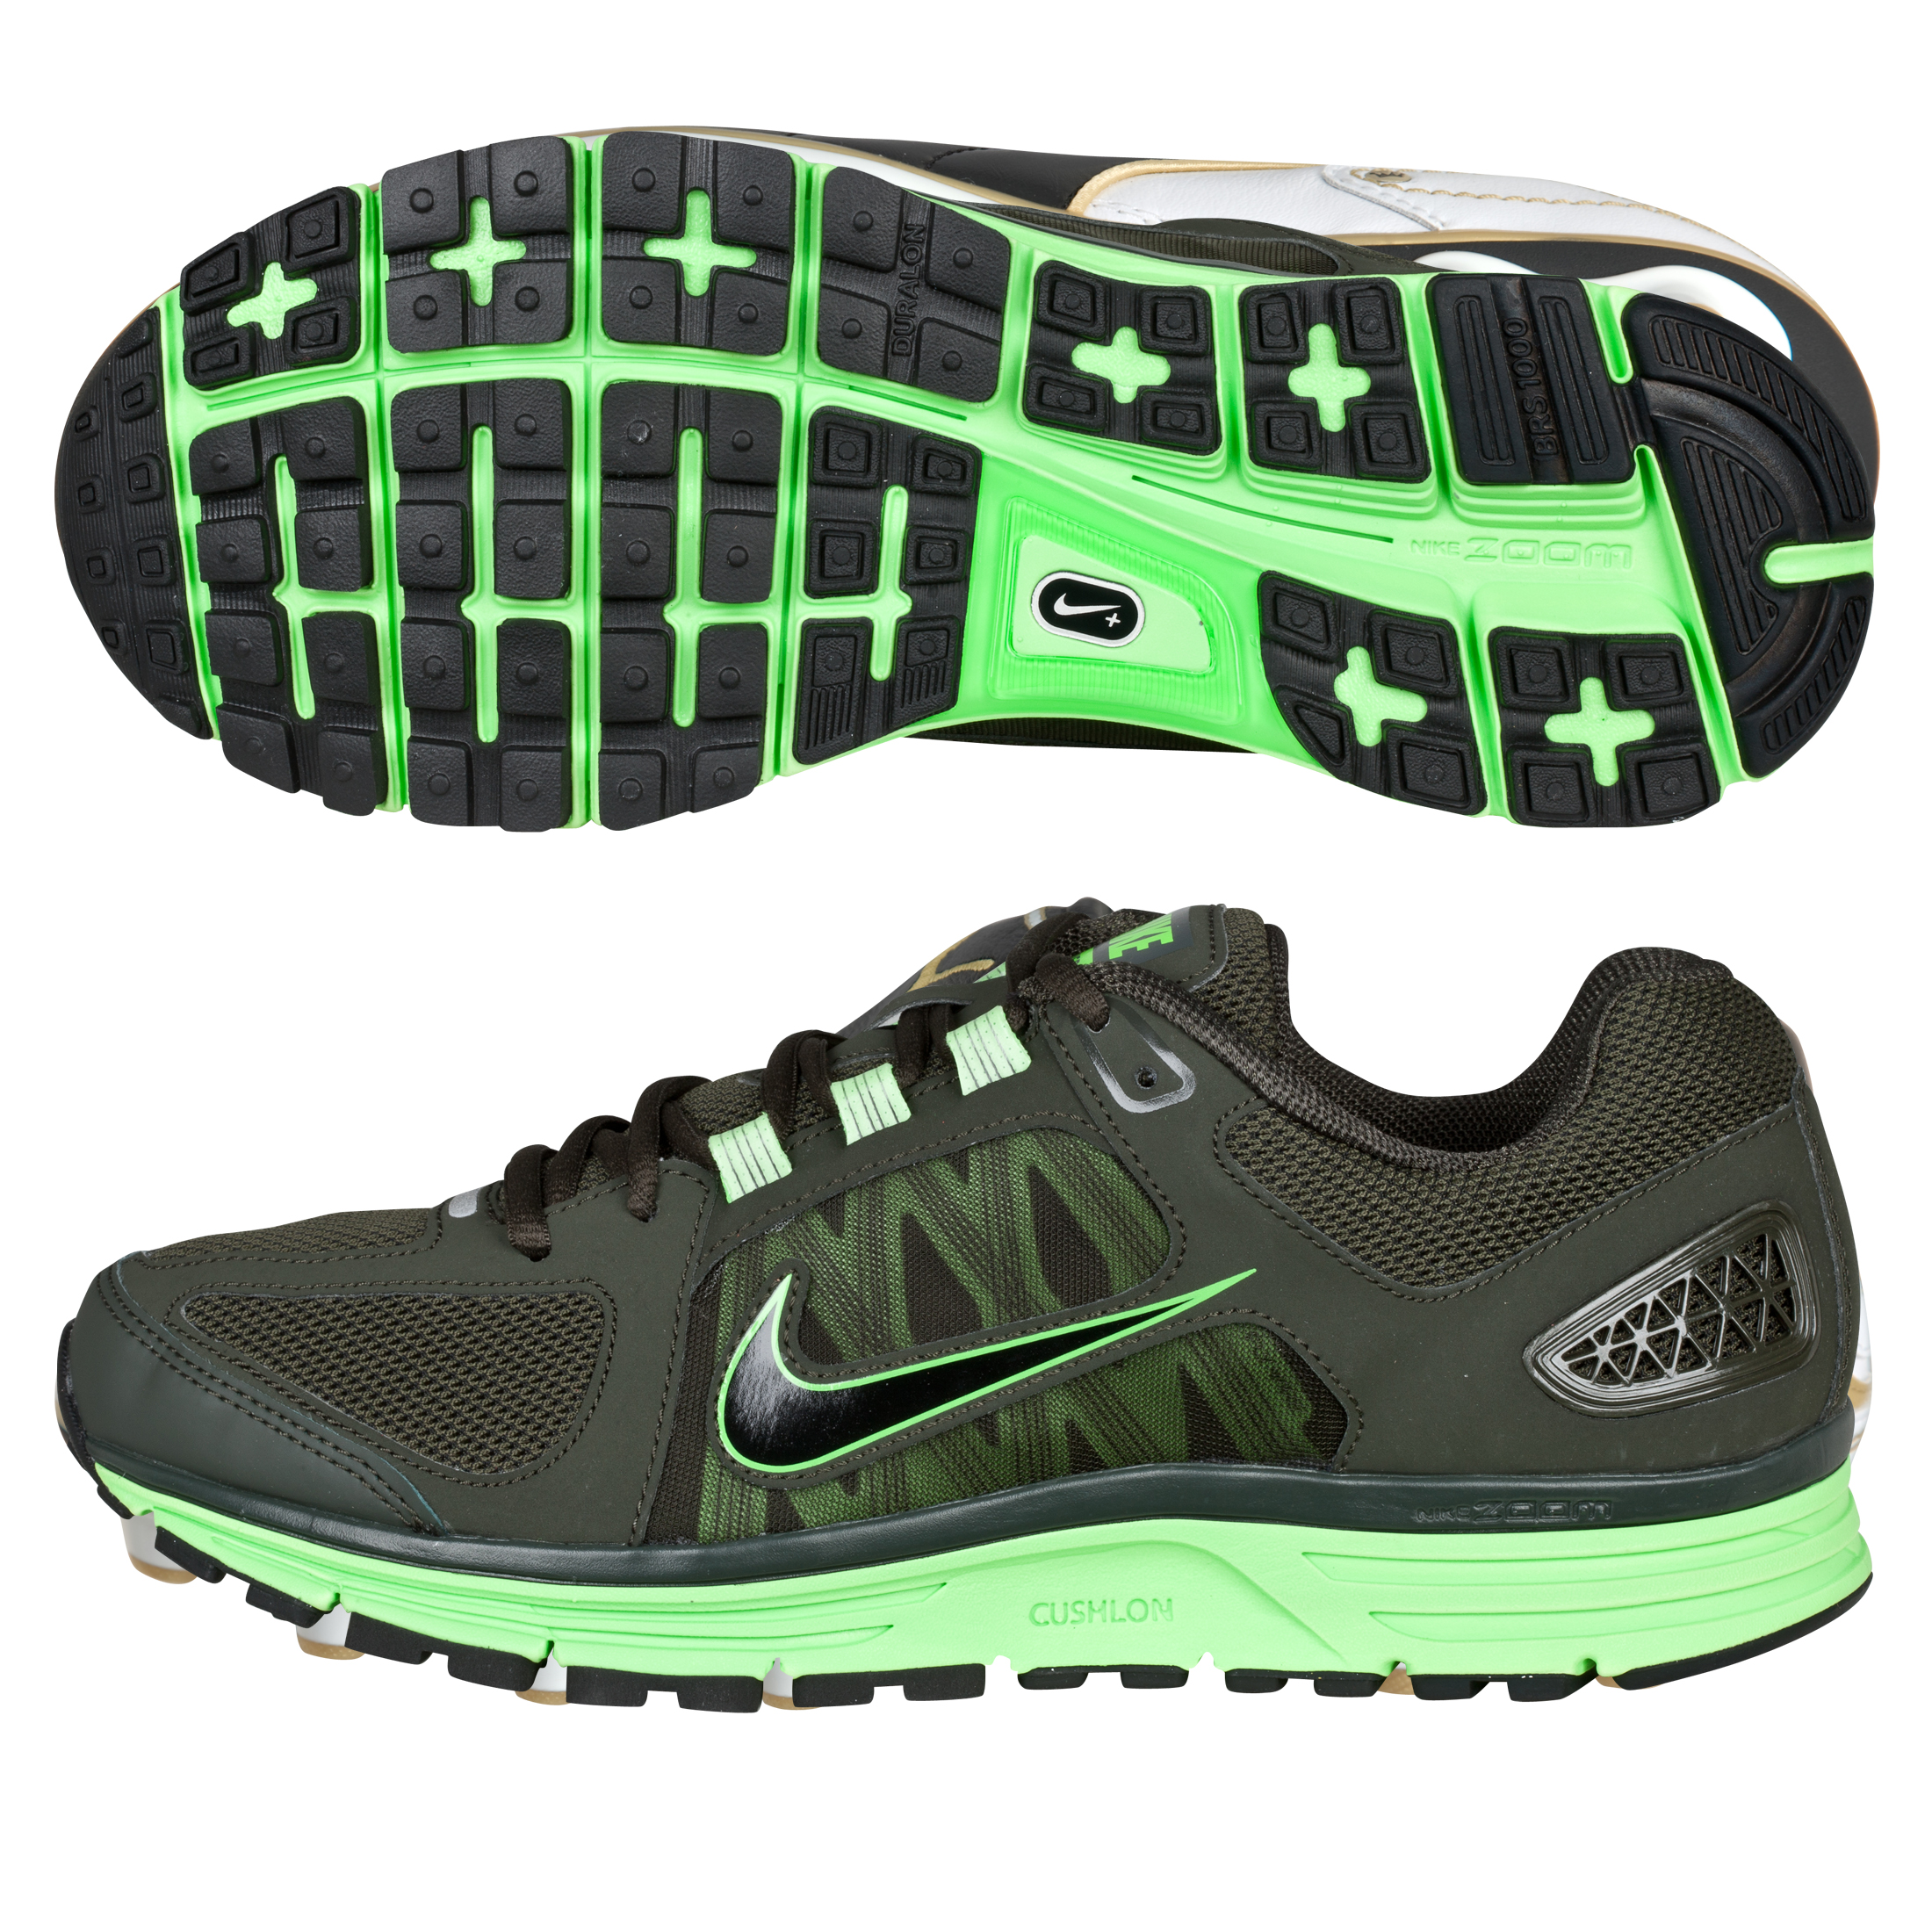 Nike Zoom Vomero(+) 7 Trainers - Black/Electric Green